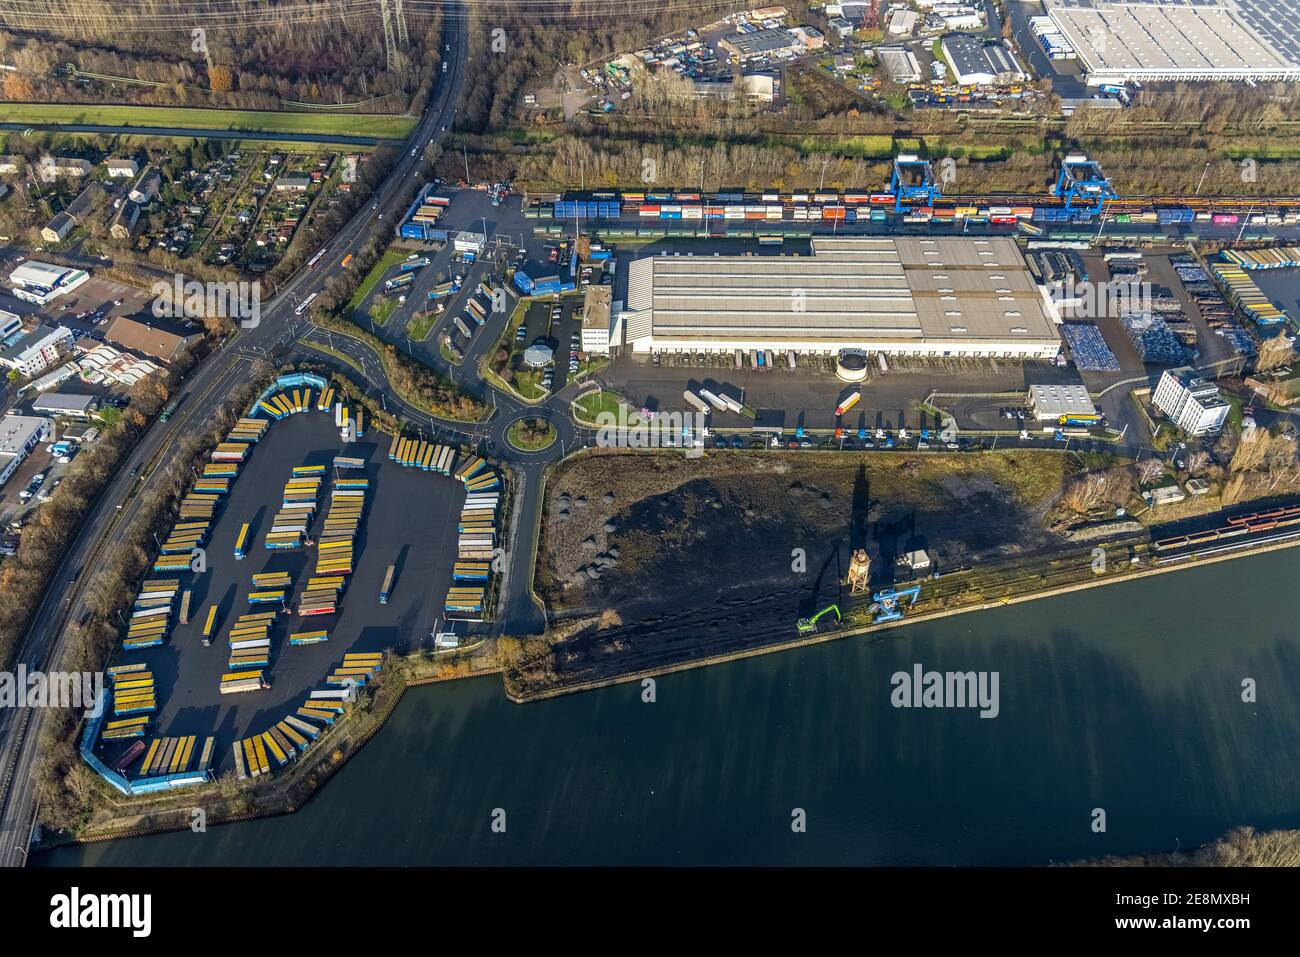 Aerial view, Am Westhafen industrial park, CTH Container Terminal Herne GmbH, Müller - Die lila Logistik AG, Rhine-Herne Canal, Unser Fritz, Herne, Ru Stock Photo